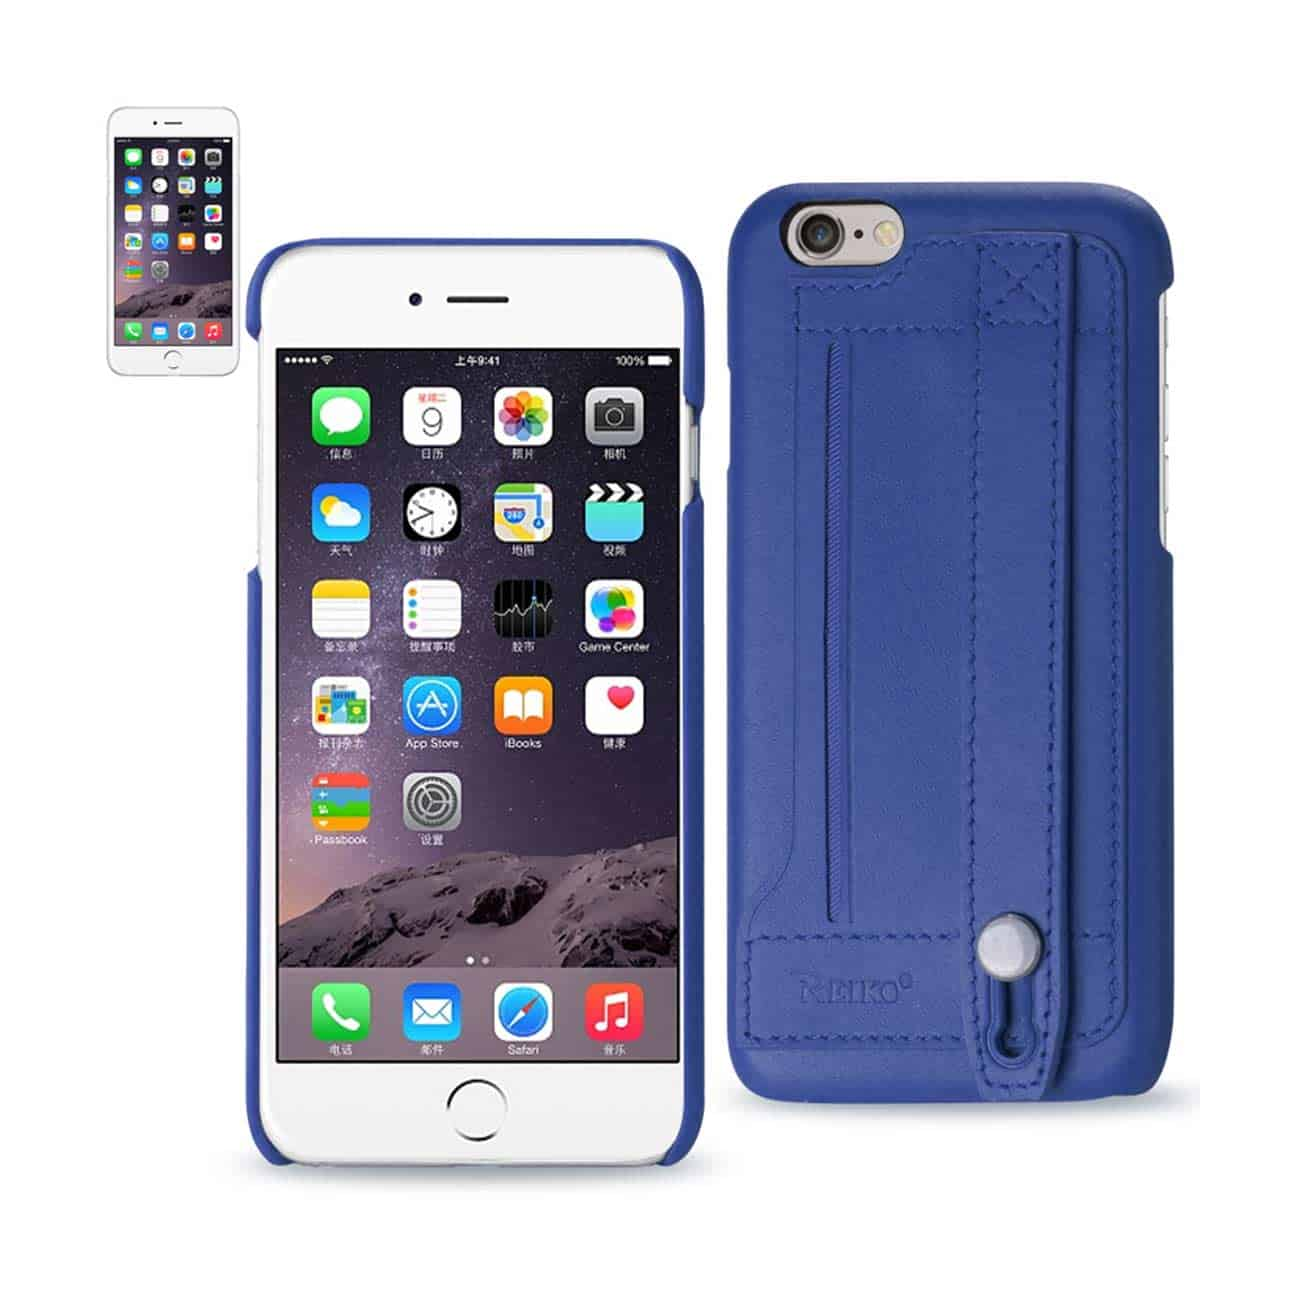 IPHONE 6 GENUINE LEATHER HAND STRAP CASE IN ULTRAMARINE